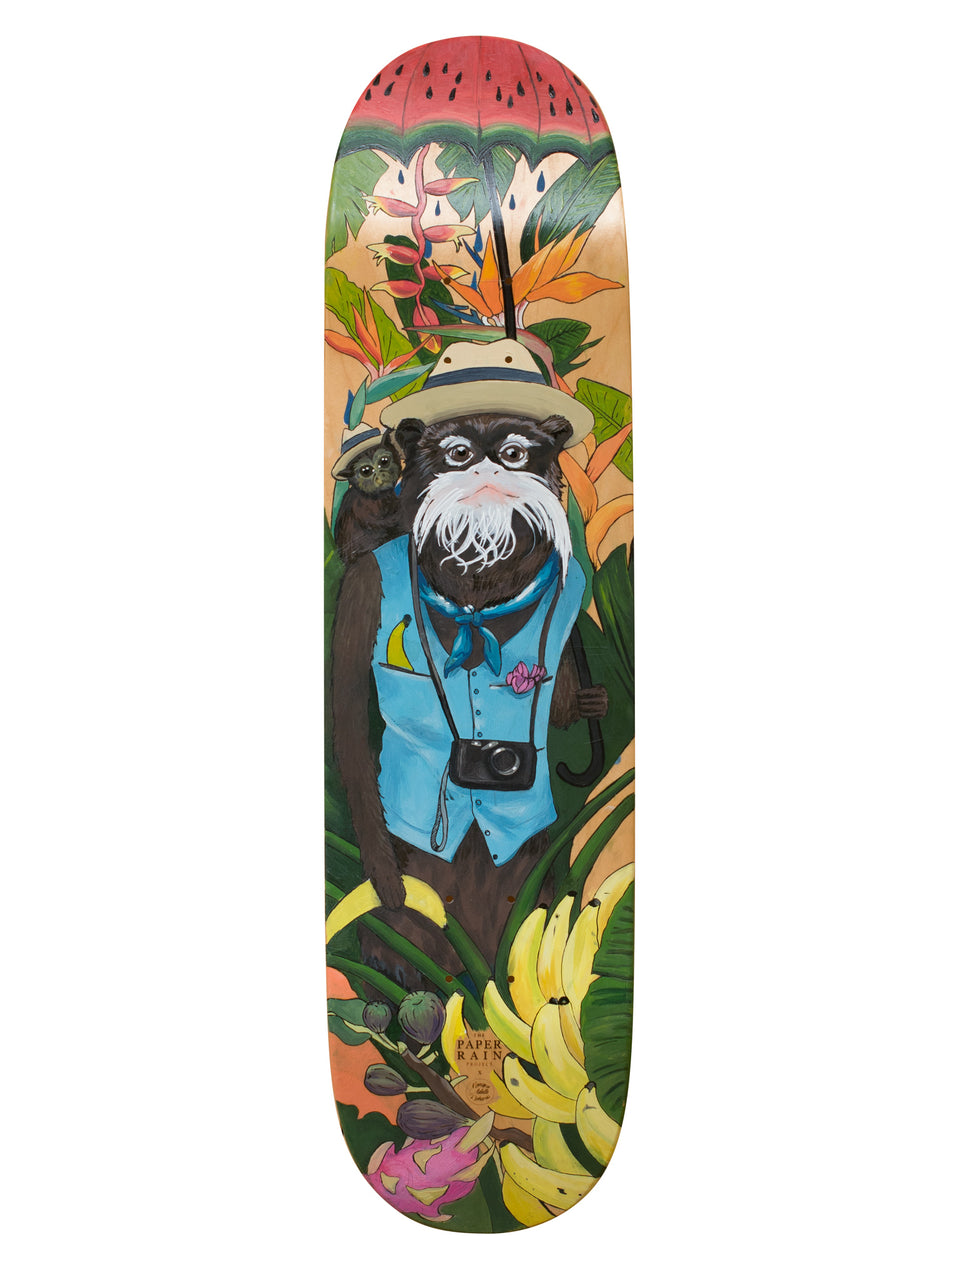 'Is that a banana in your pocket?' hand painted by Monique Richards on maple skateboard.